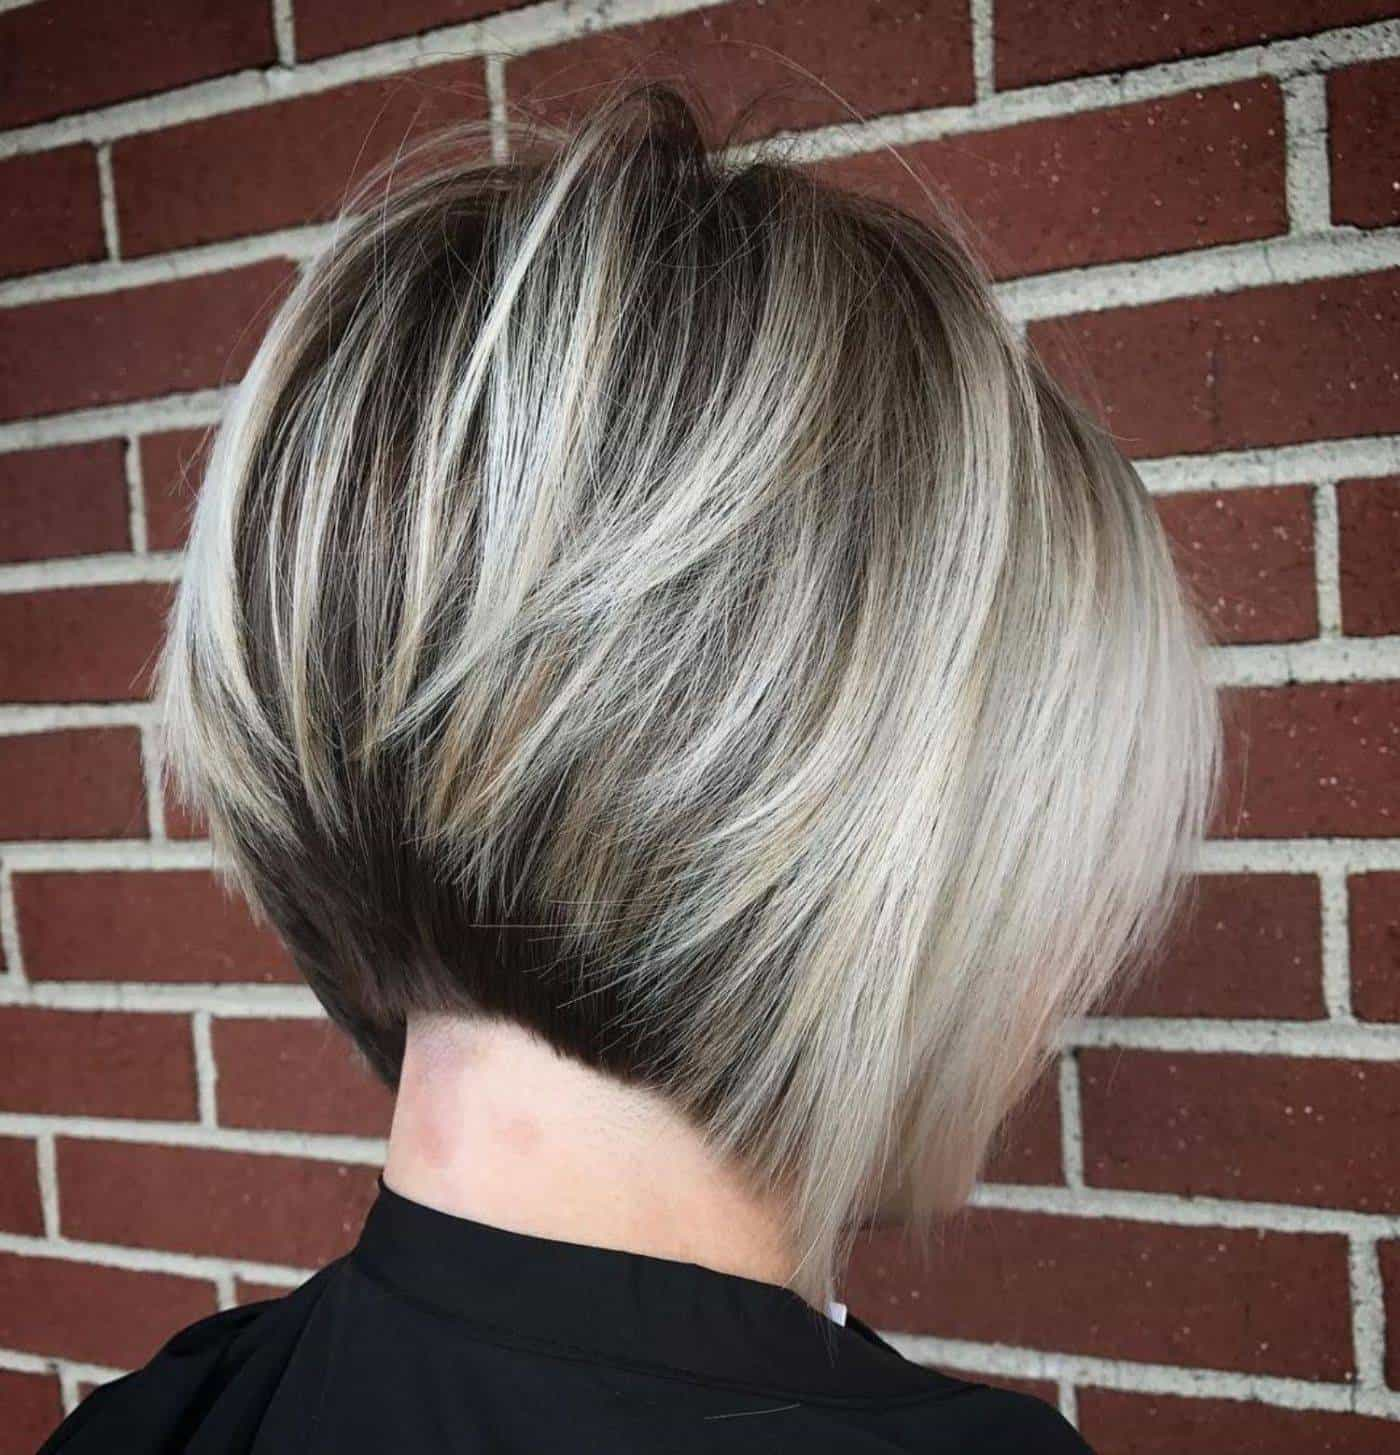 20-best-short-hairdos-for-women-over-60-will-knock-20-years-off_19